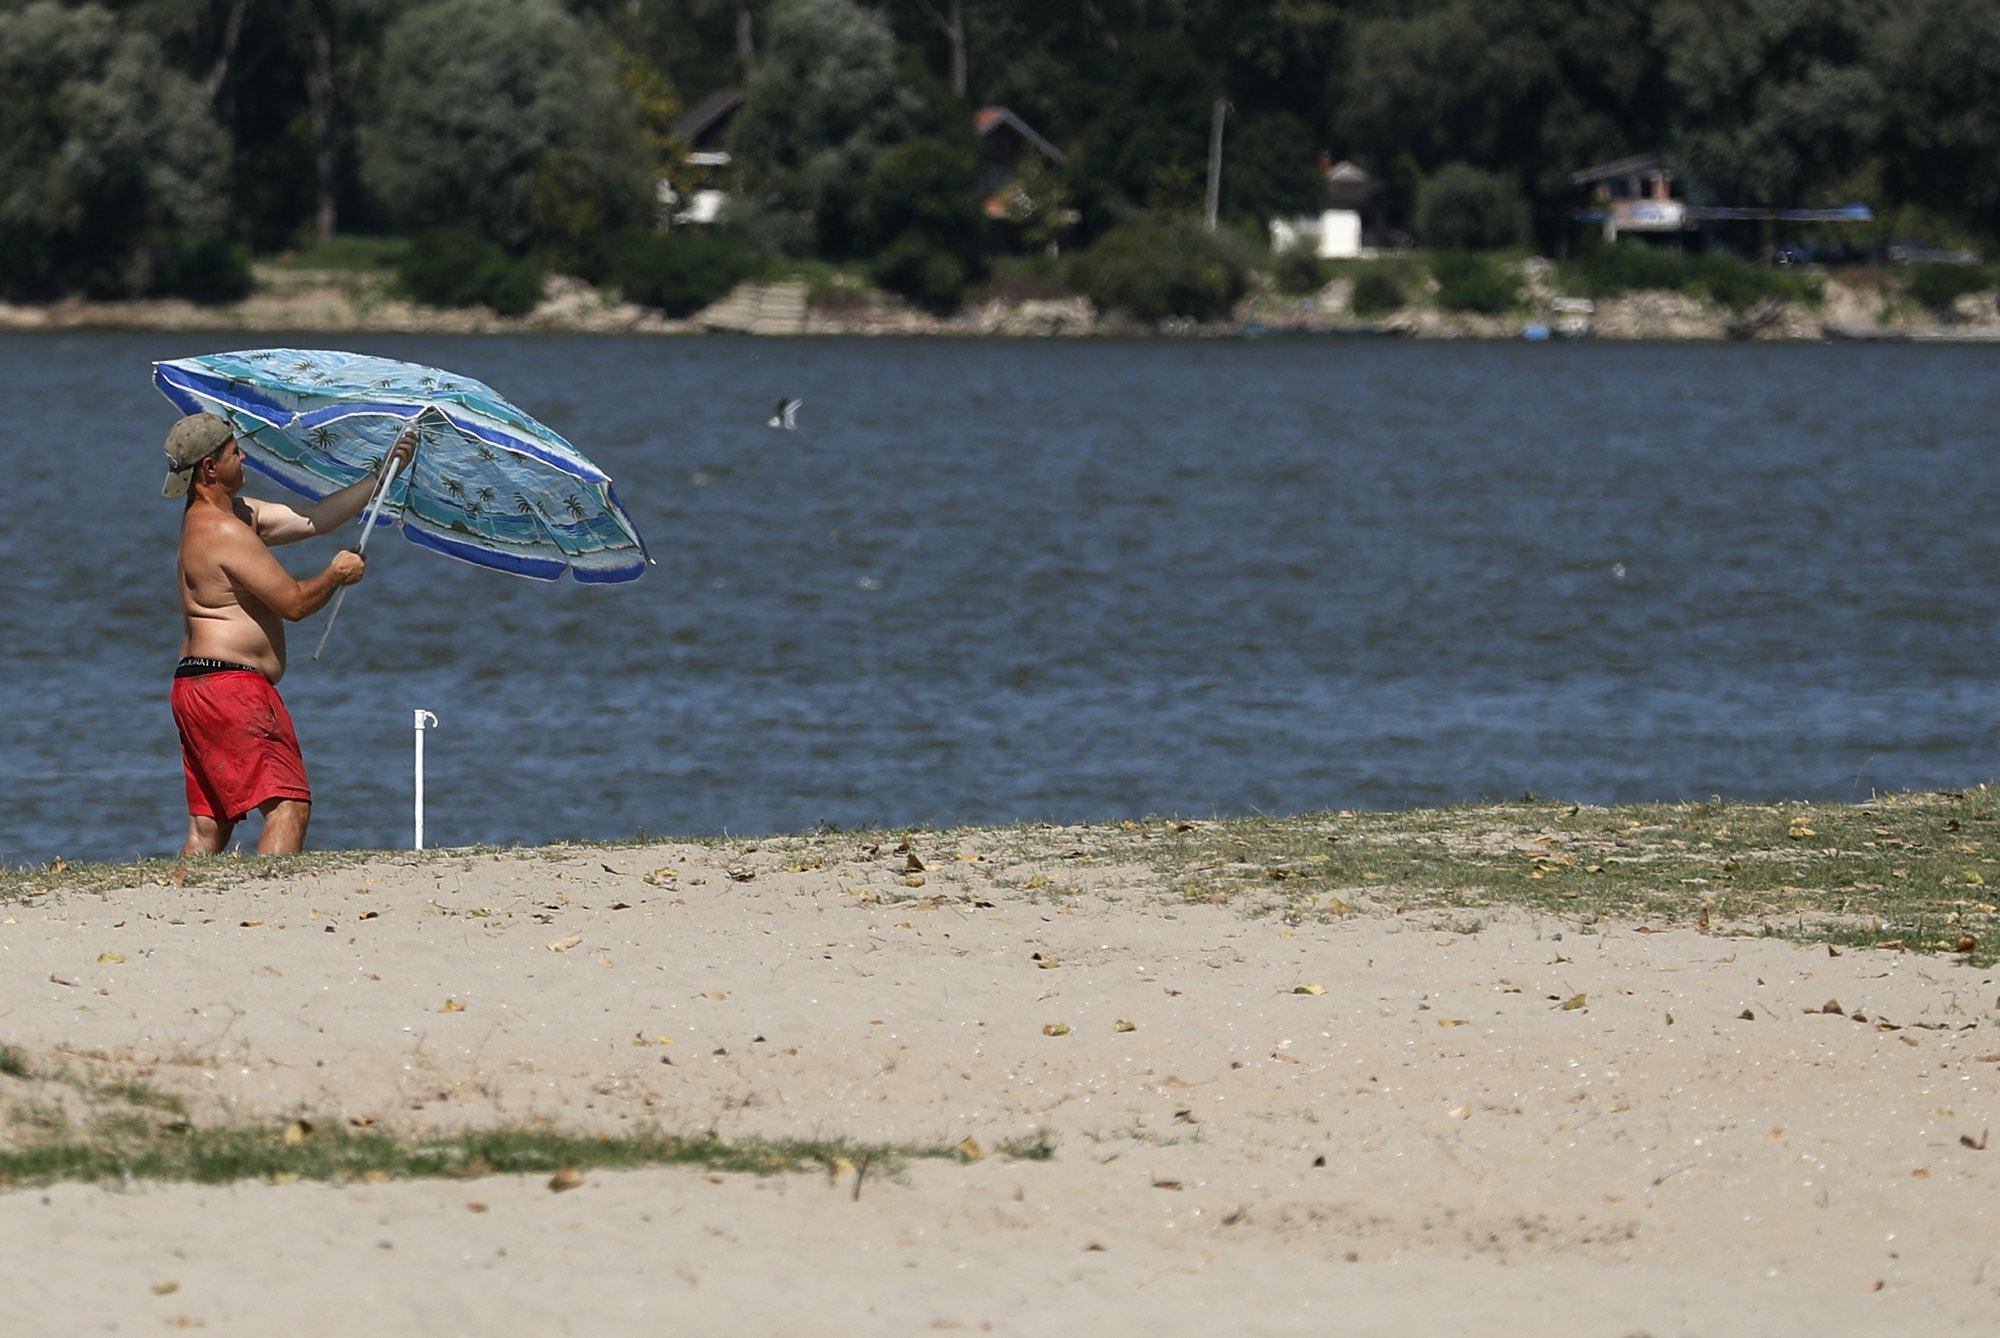 The Latest: Balkans sizzle under summer sun, warning issued